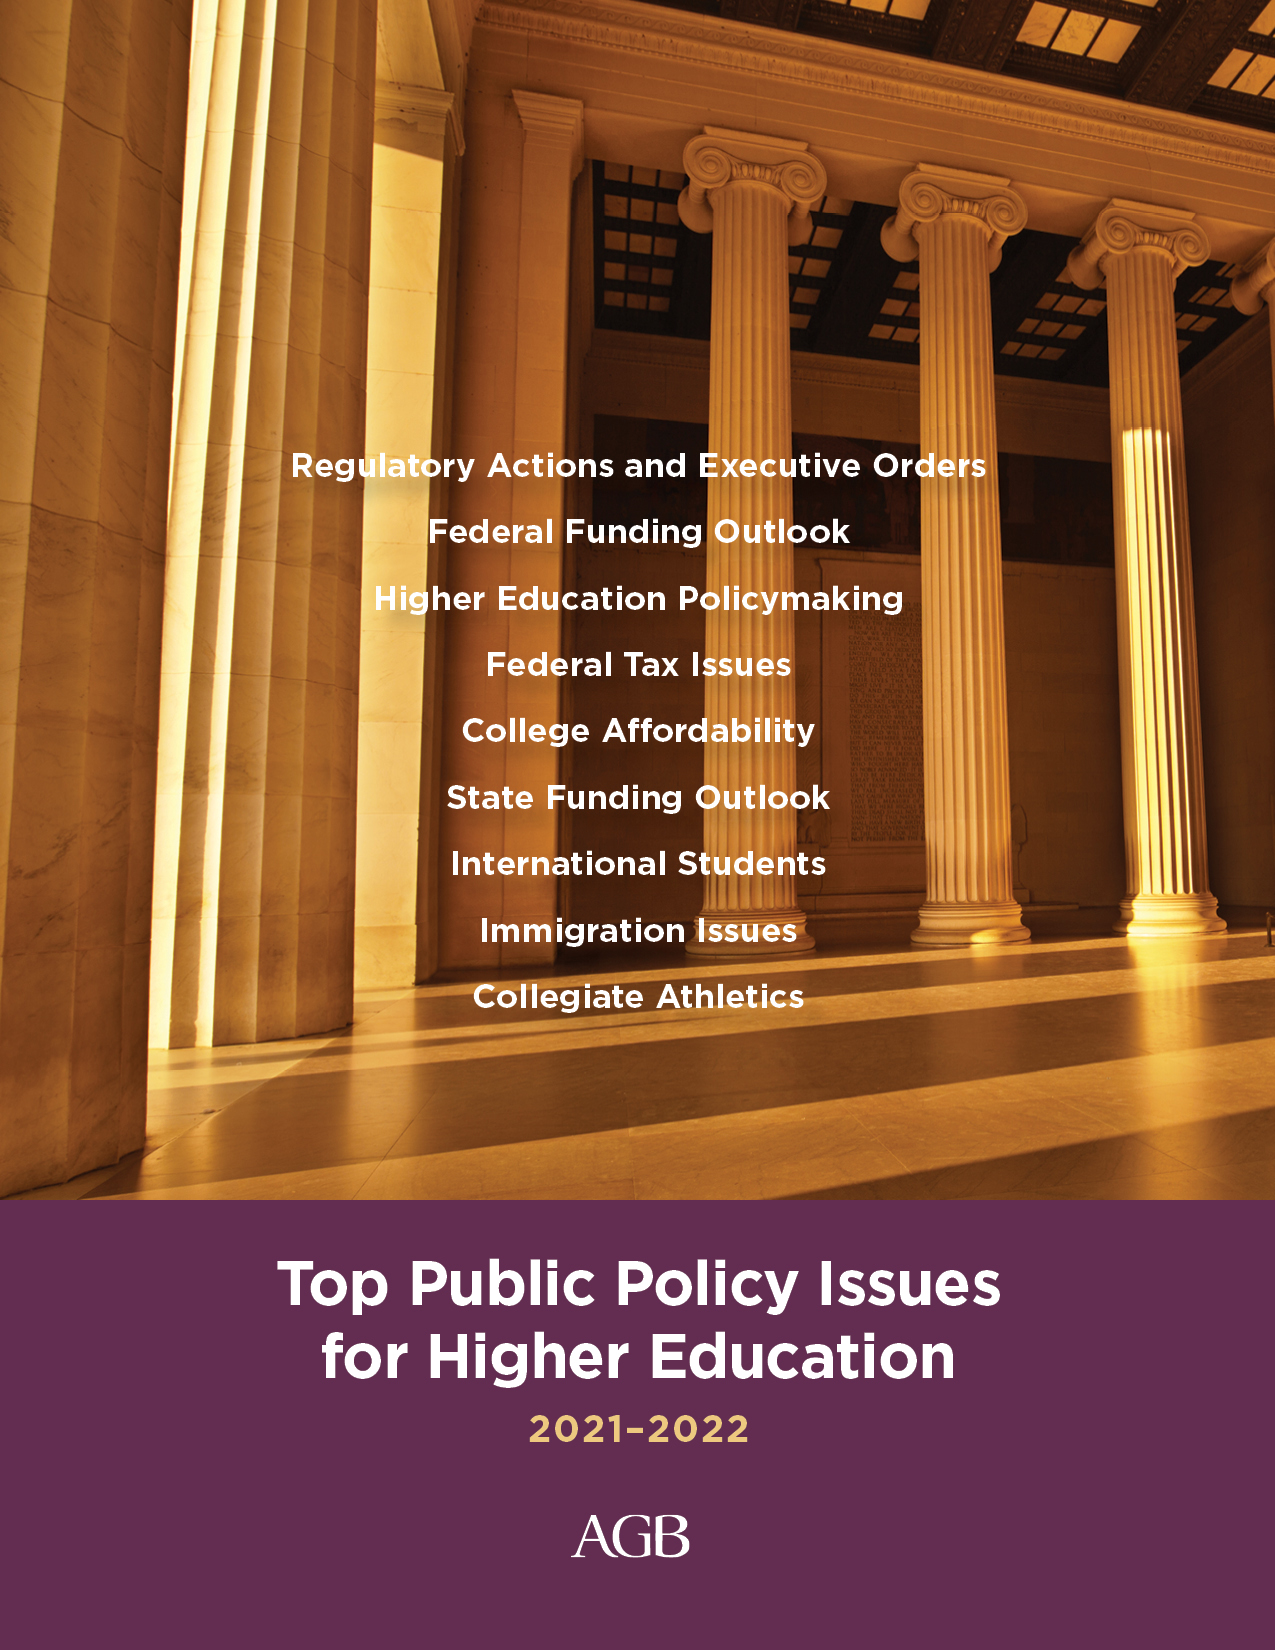 Higher Education Public Policy